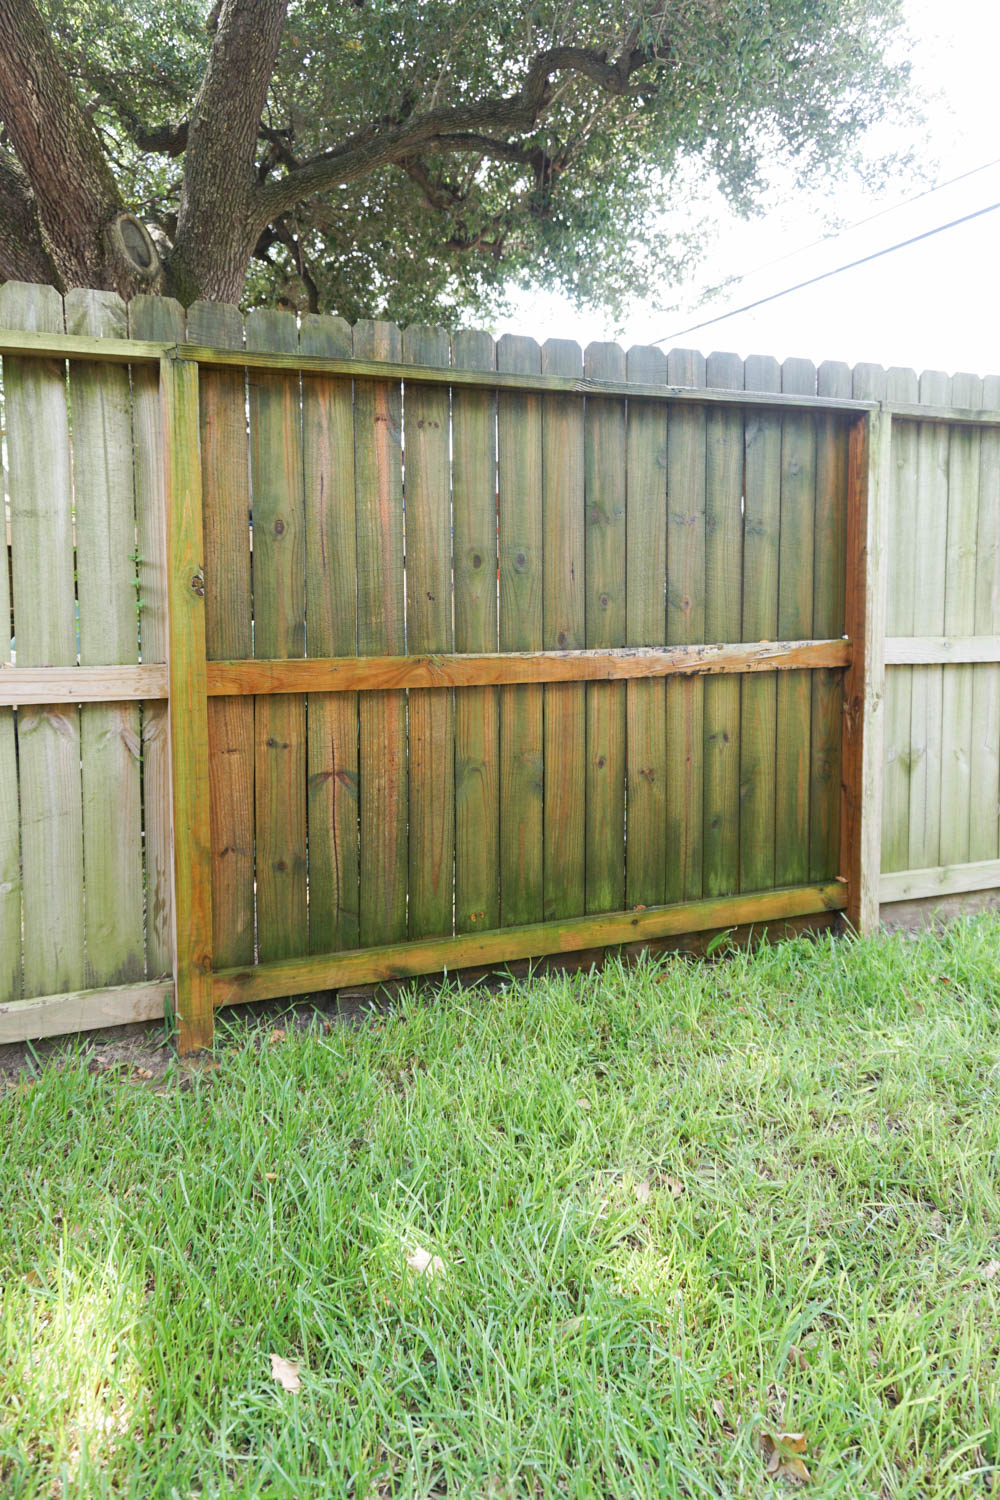 How to clean wood fence - in process